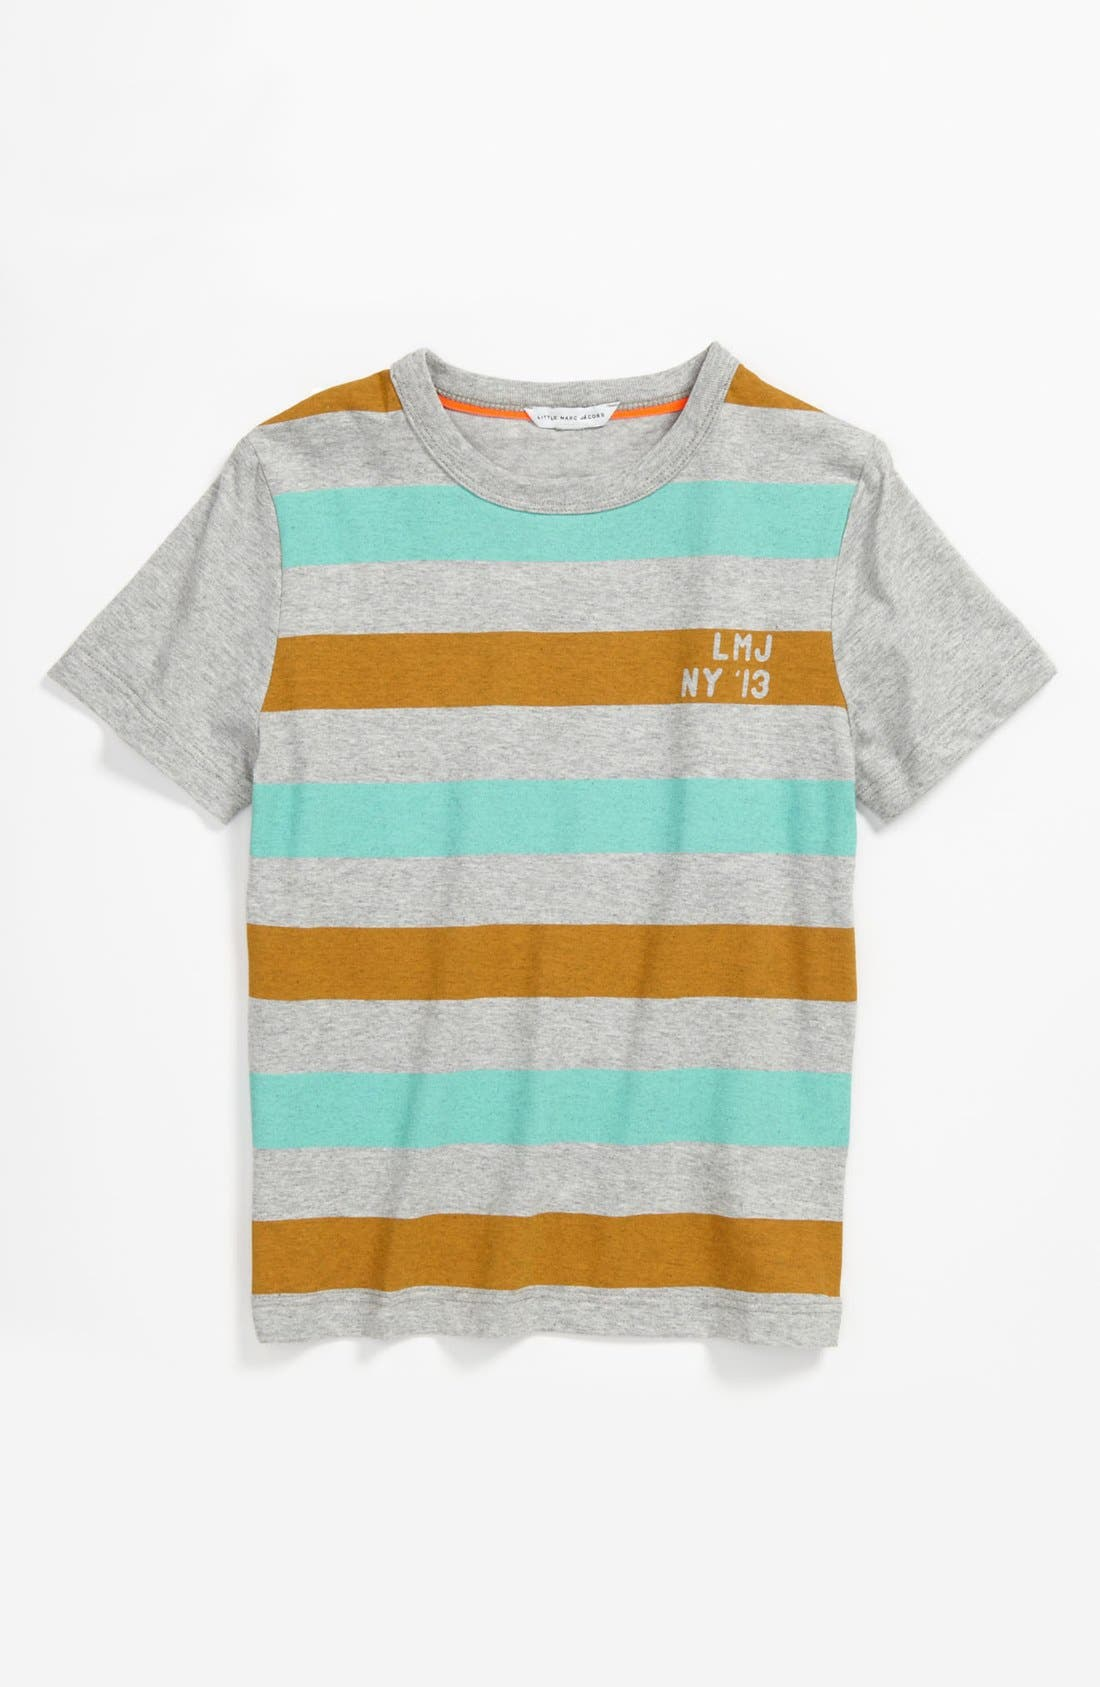 Alternate Image 1 Selected - LITTLE MARC JACOBS Stripe T-Shirt (Big Boys)